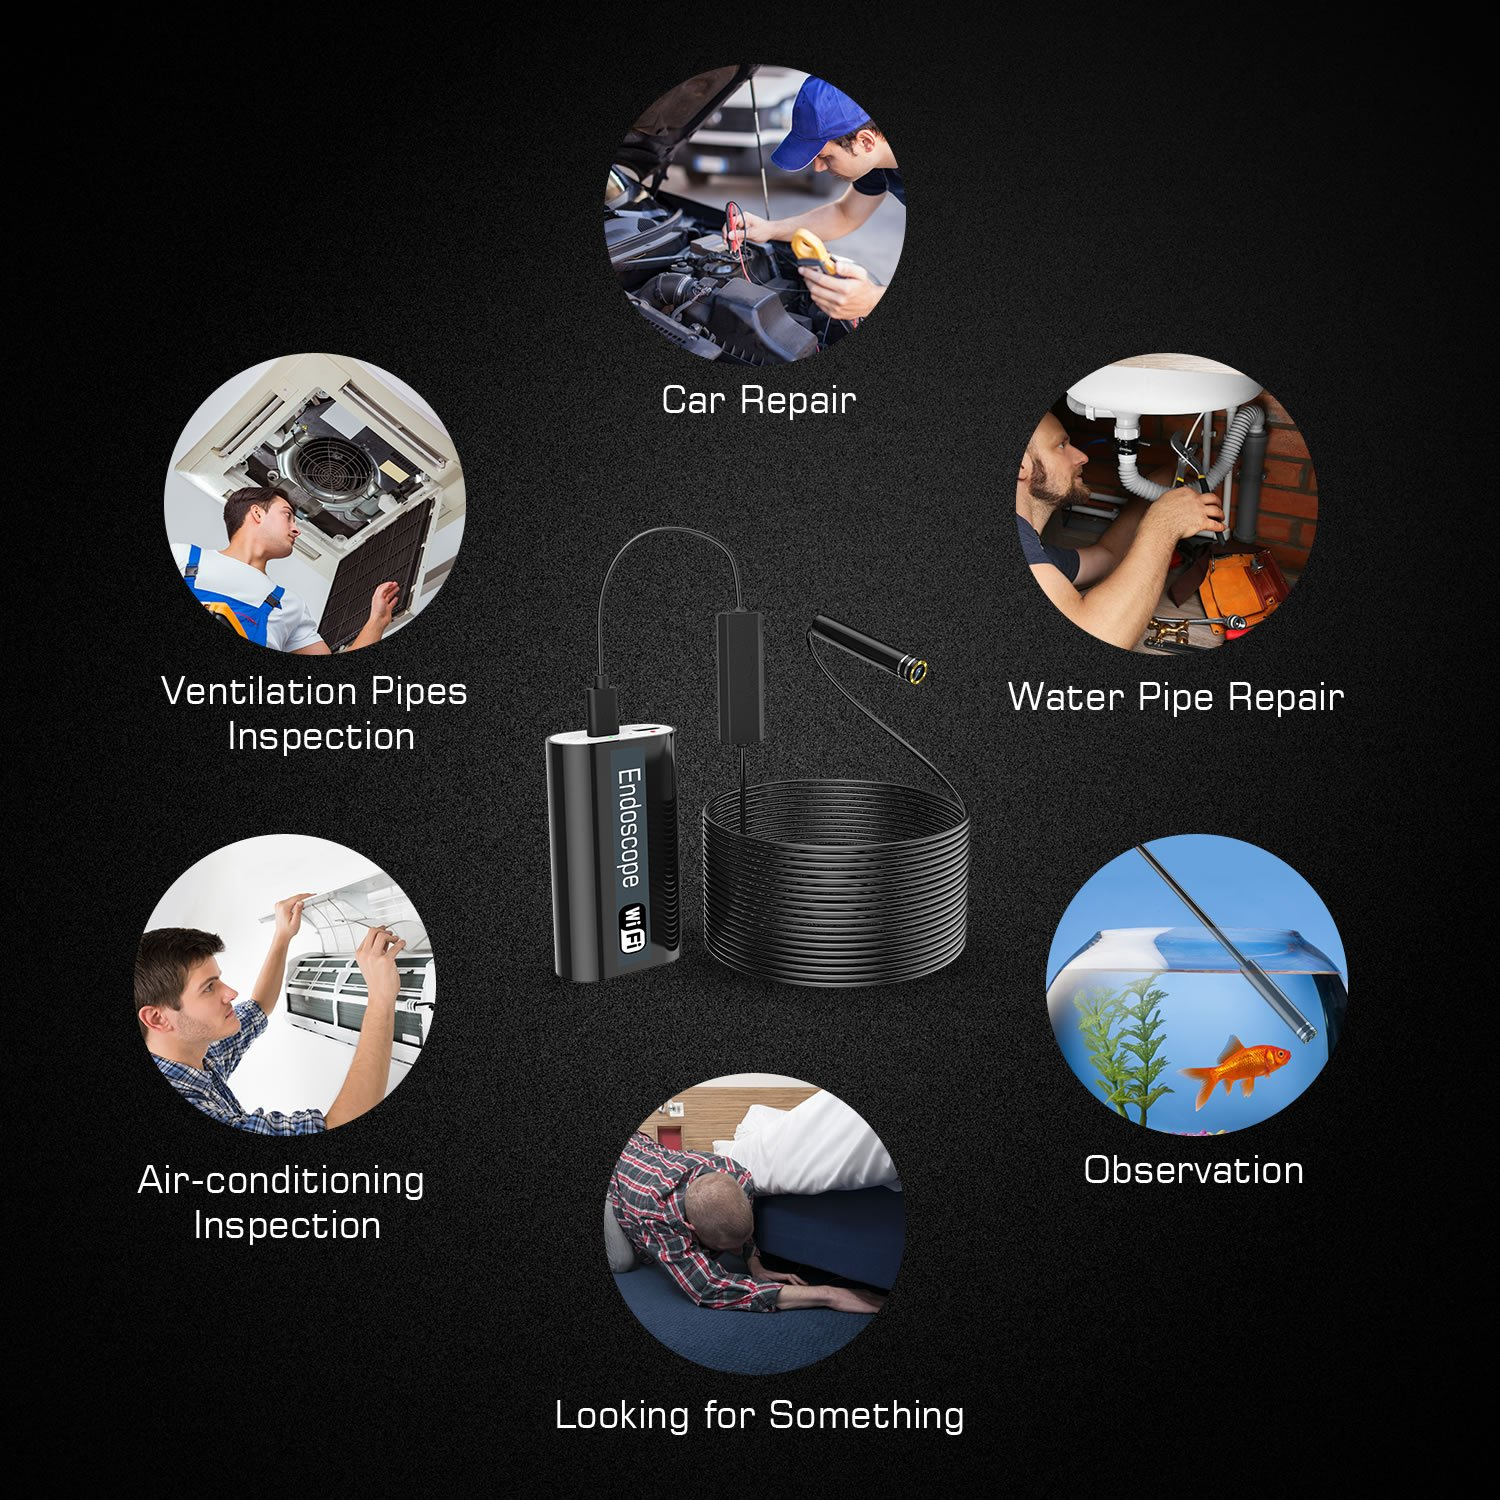 5M Inspection Camera Endoscope USB Borescope Snake Camera Wireless WiFi Waterproof with 24/¡/± Flexible Grabber Pick-up Tool 4 Finger Claw Retriever Snake 720P HD 2.0 MP for Android,IOS,iPhone